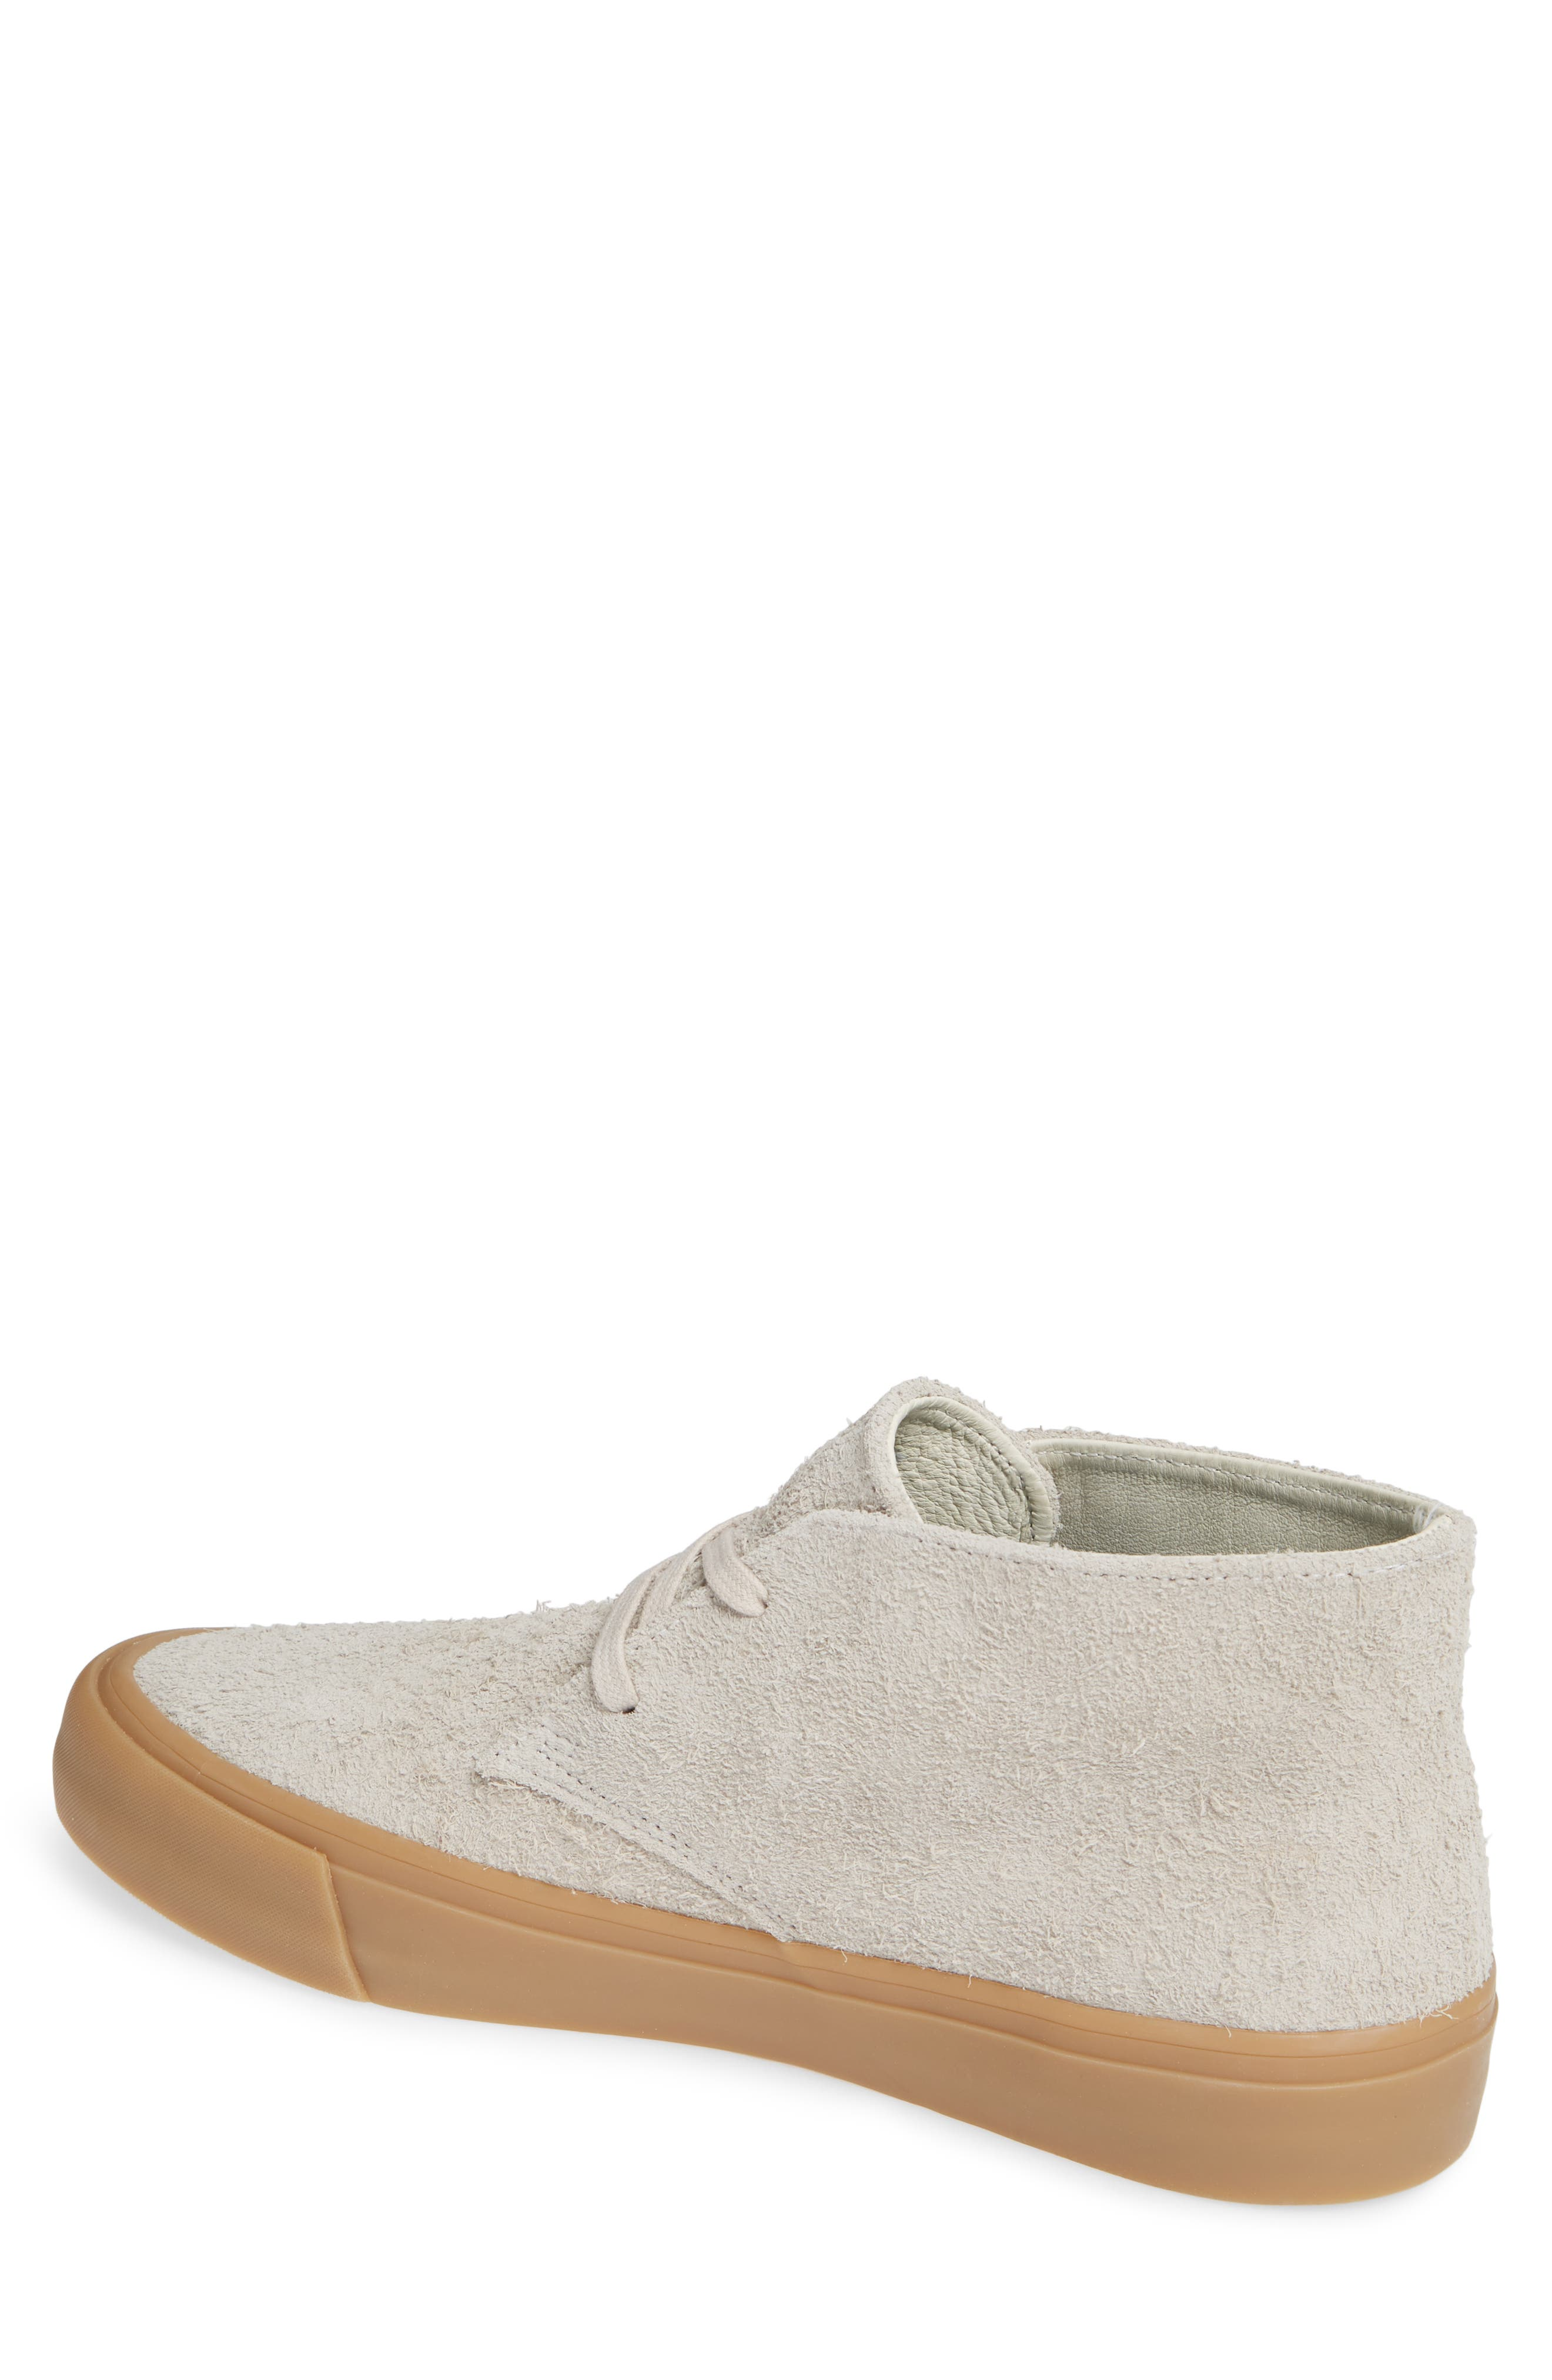 Maslon Chukka Boot,                             Alternate thumbnail 2, color,                             110